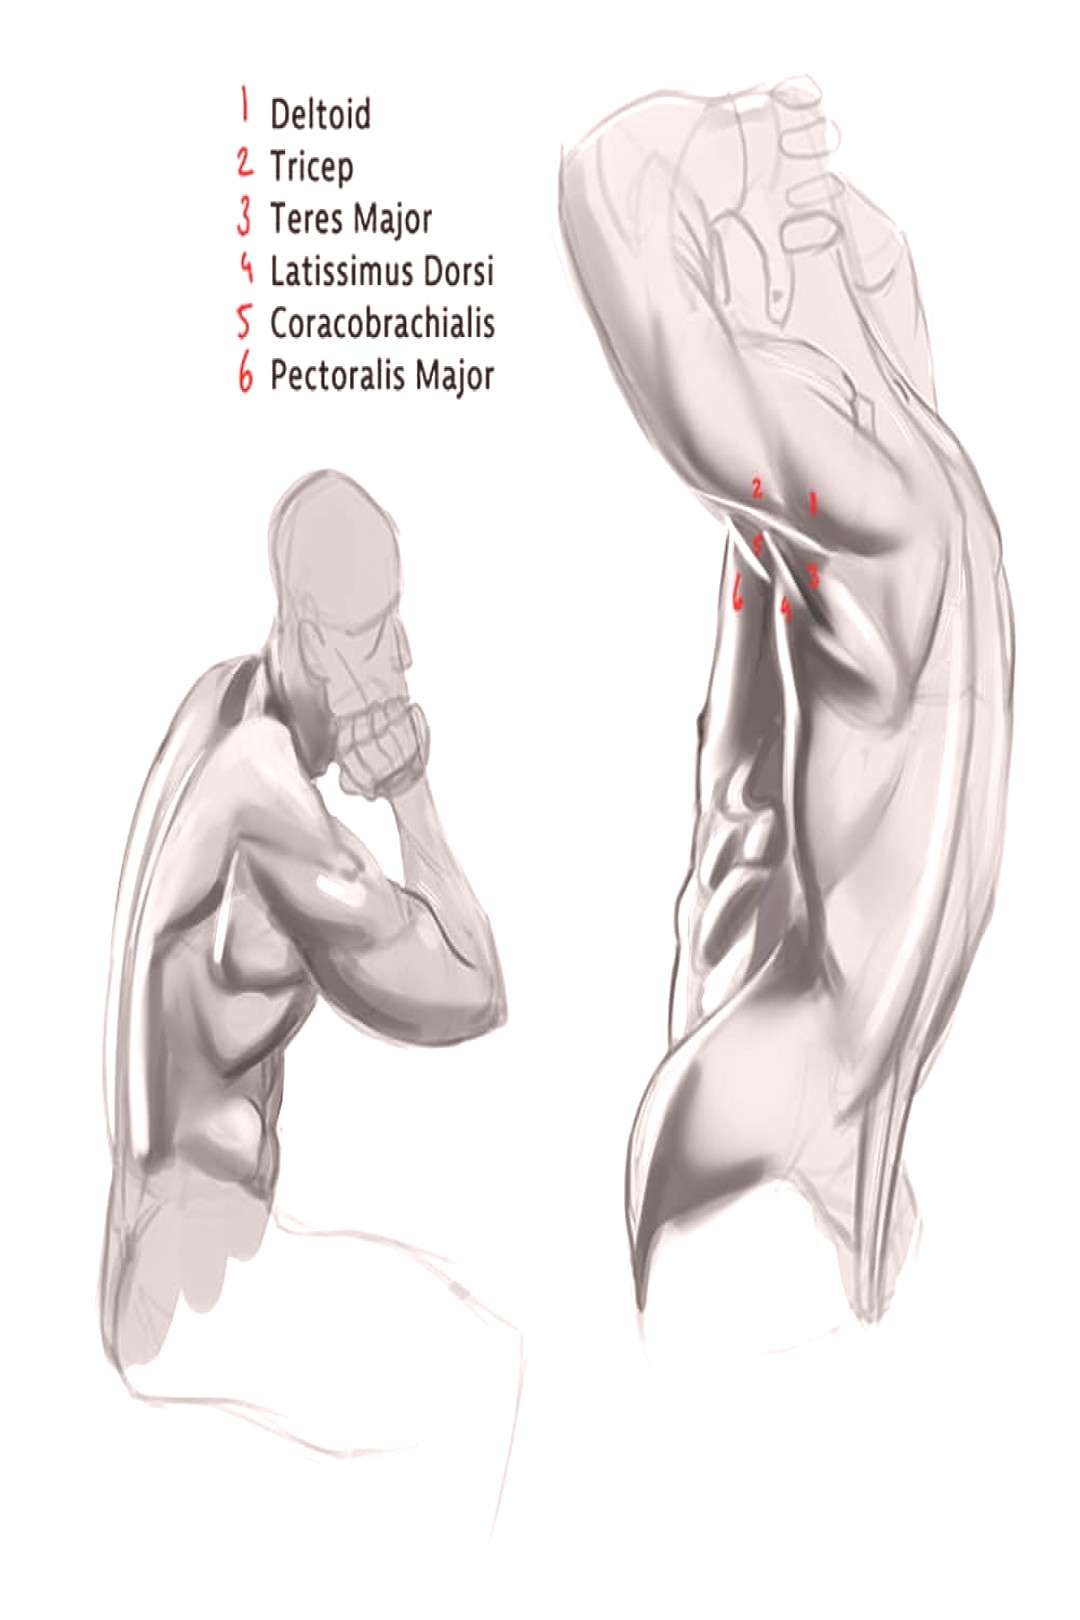 Figuring out that complicated layering of muscles at the shoulder